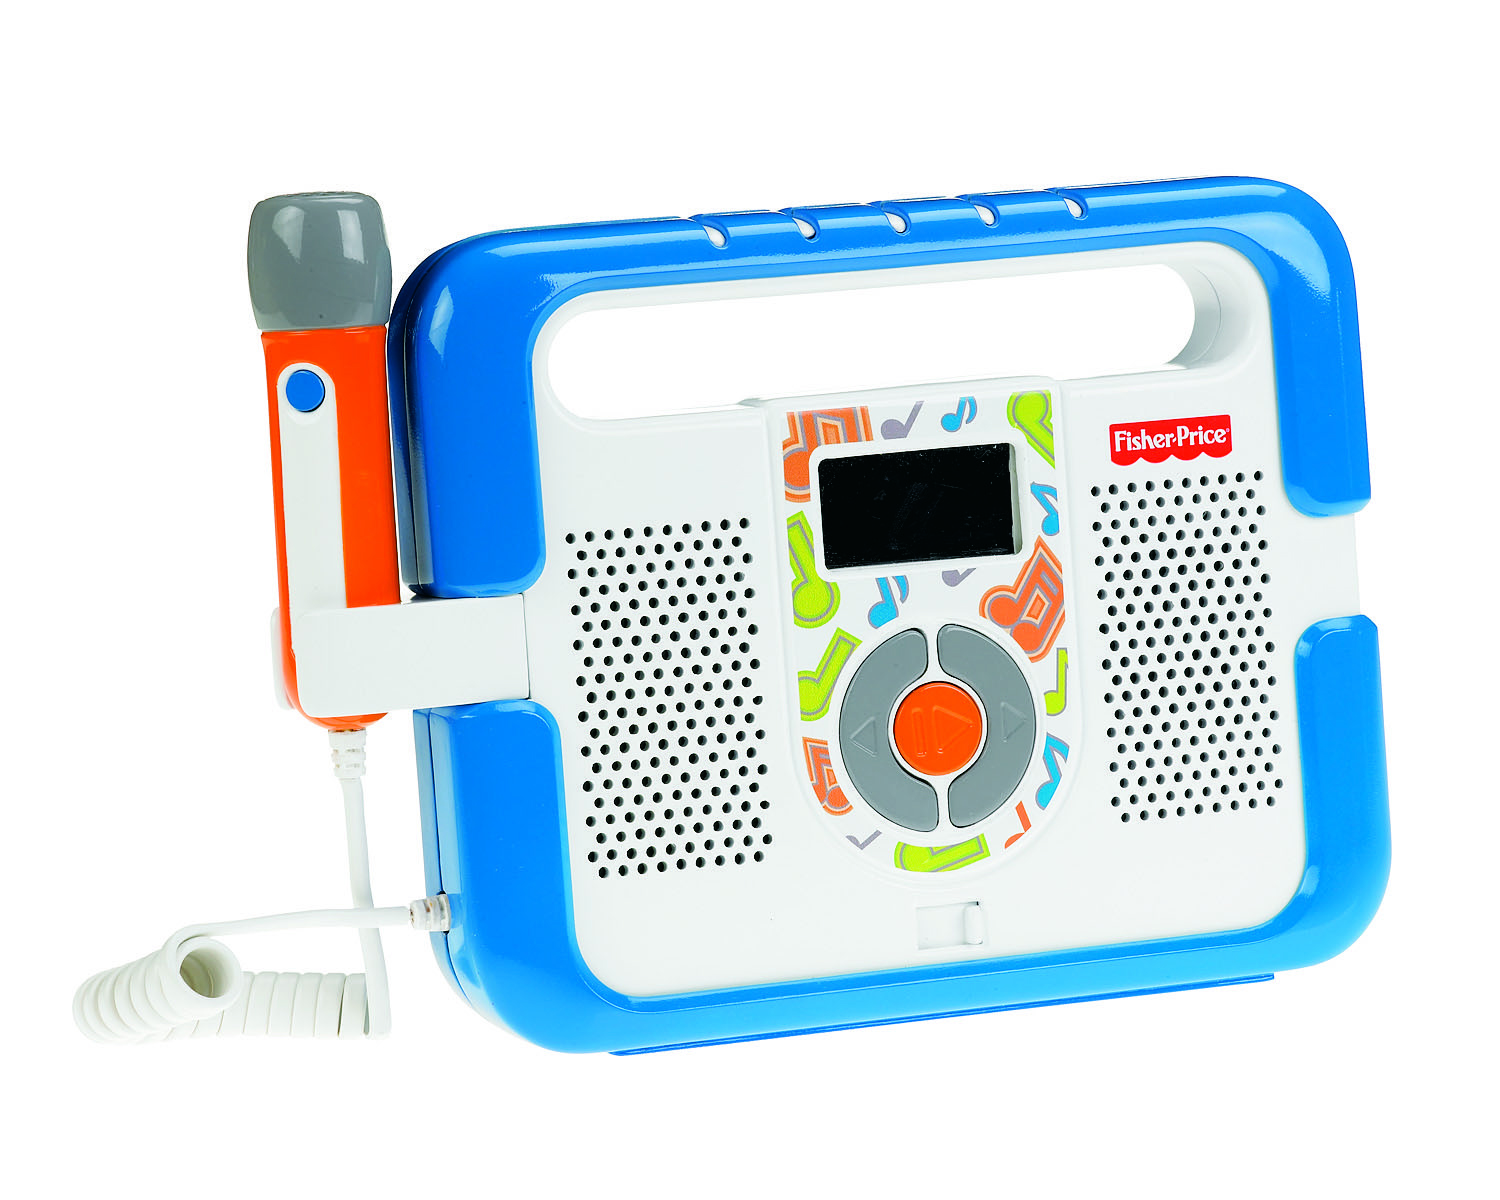 fisher price expands kid tough line to include mp3 player and video camera. Black Bedroom Furniture Sets. Home Design Ideas